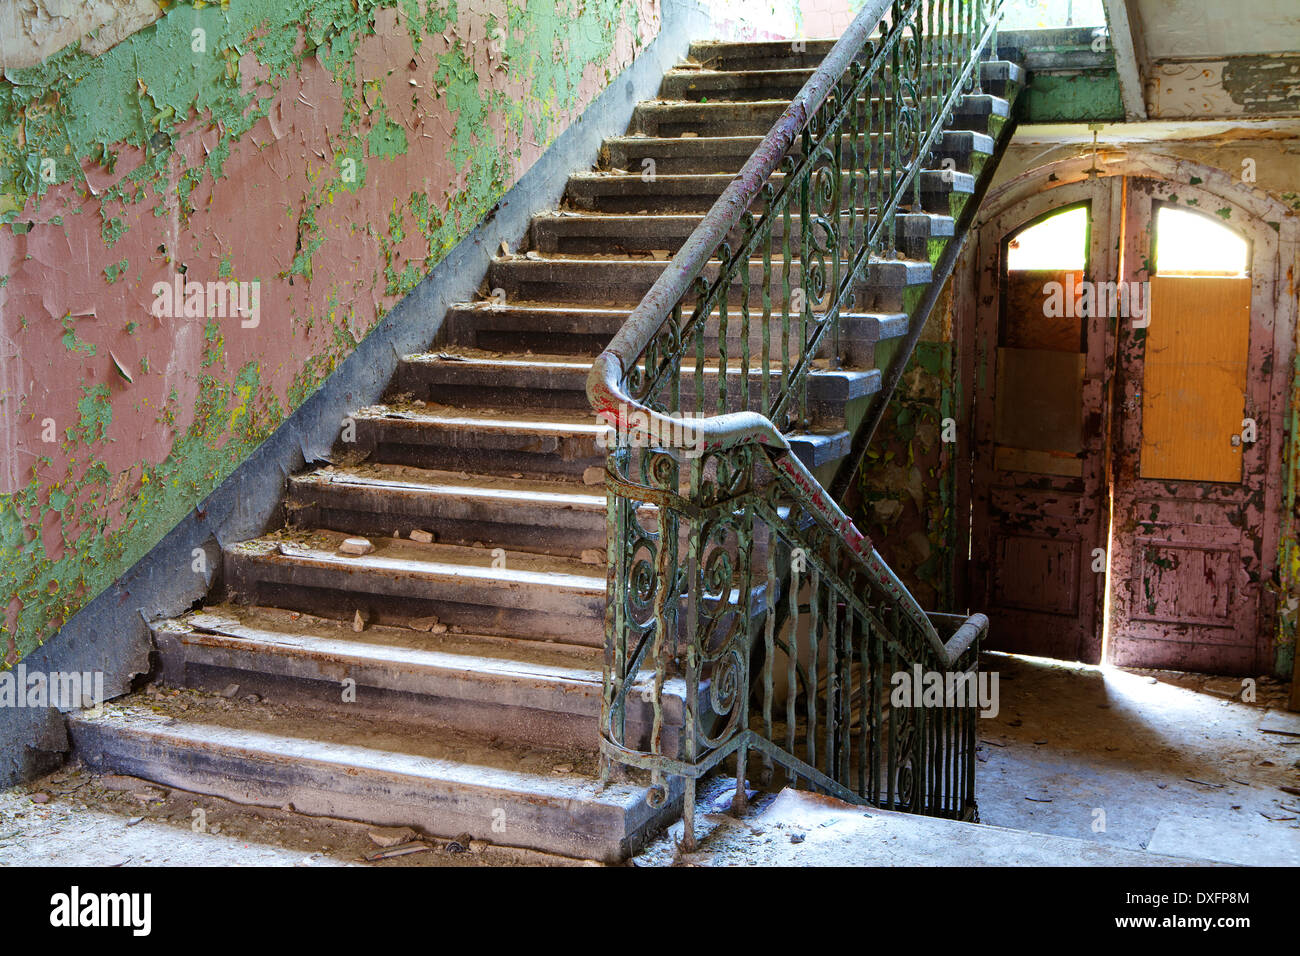 Stairs in an Abandoned Building - Stock Image